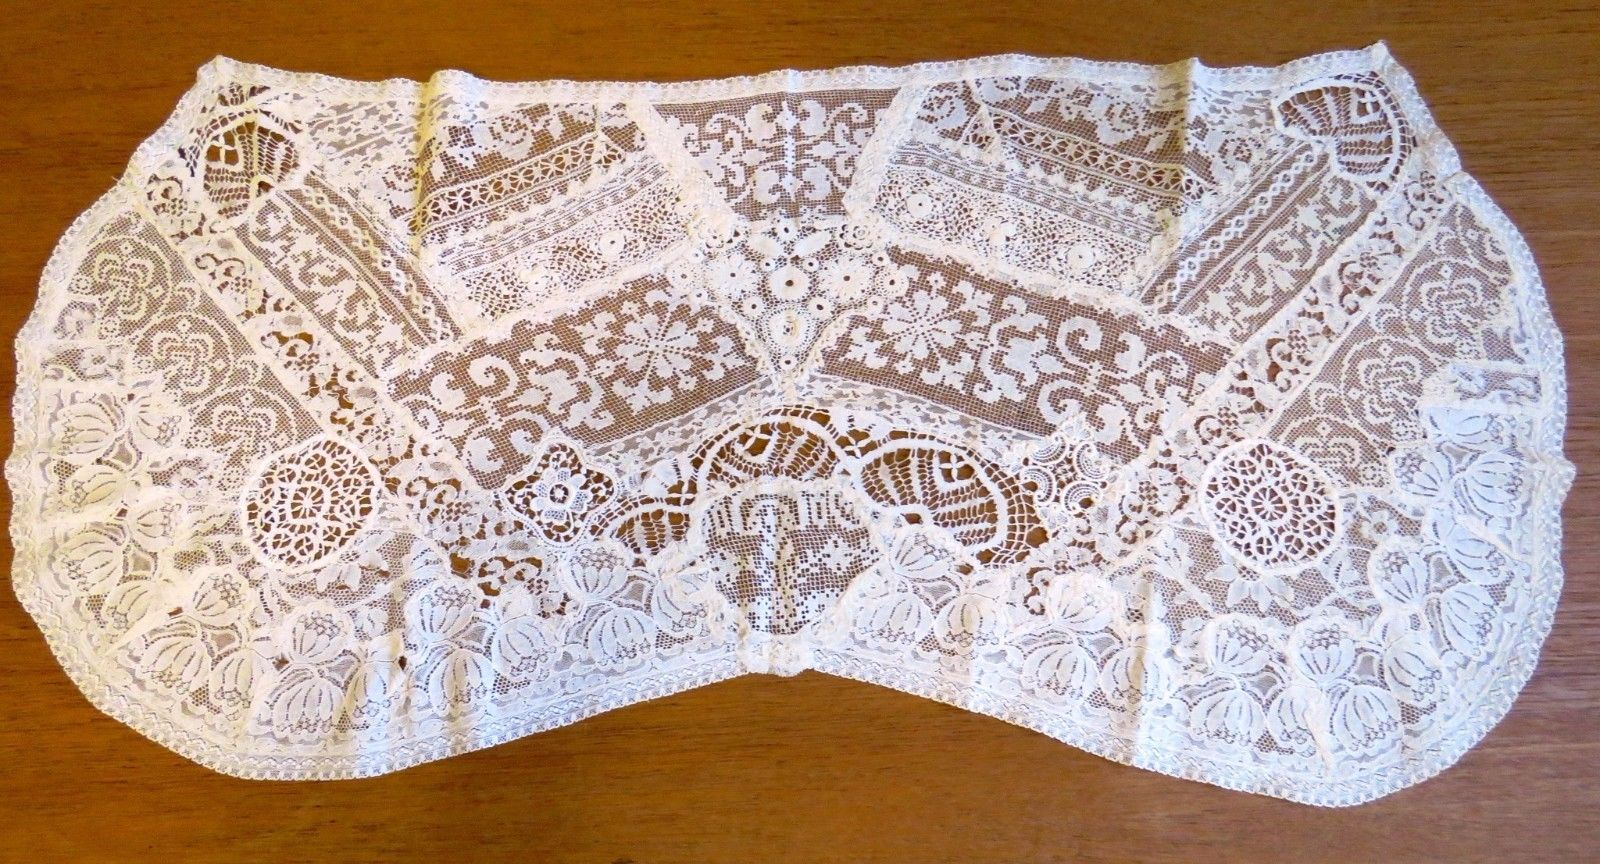 Antique Runner Normandy Lace Table Doily Handmade Dresser Scarf Sampler Mat (L&T-370)